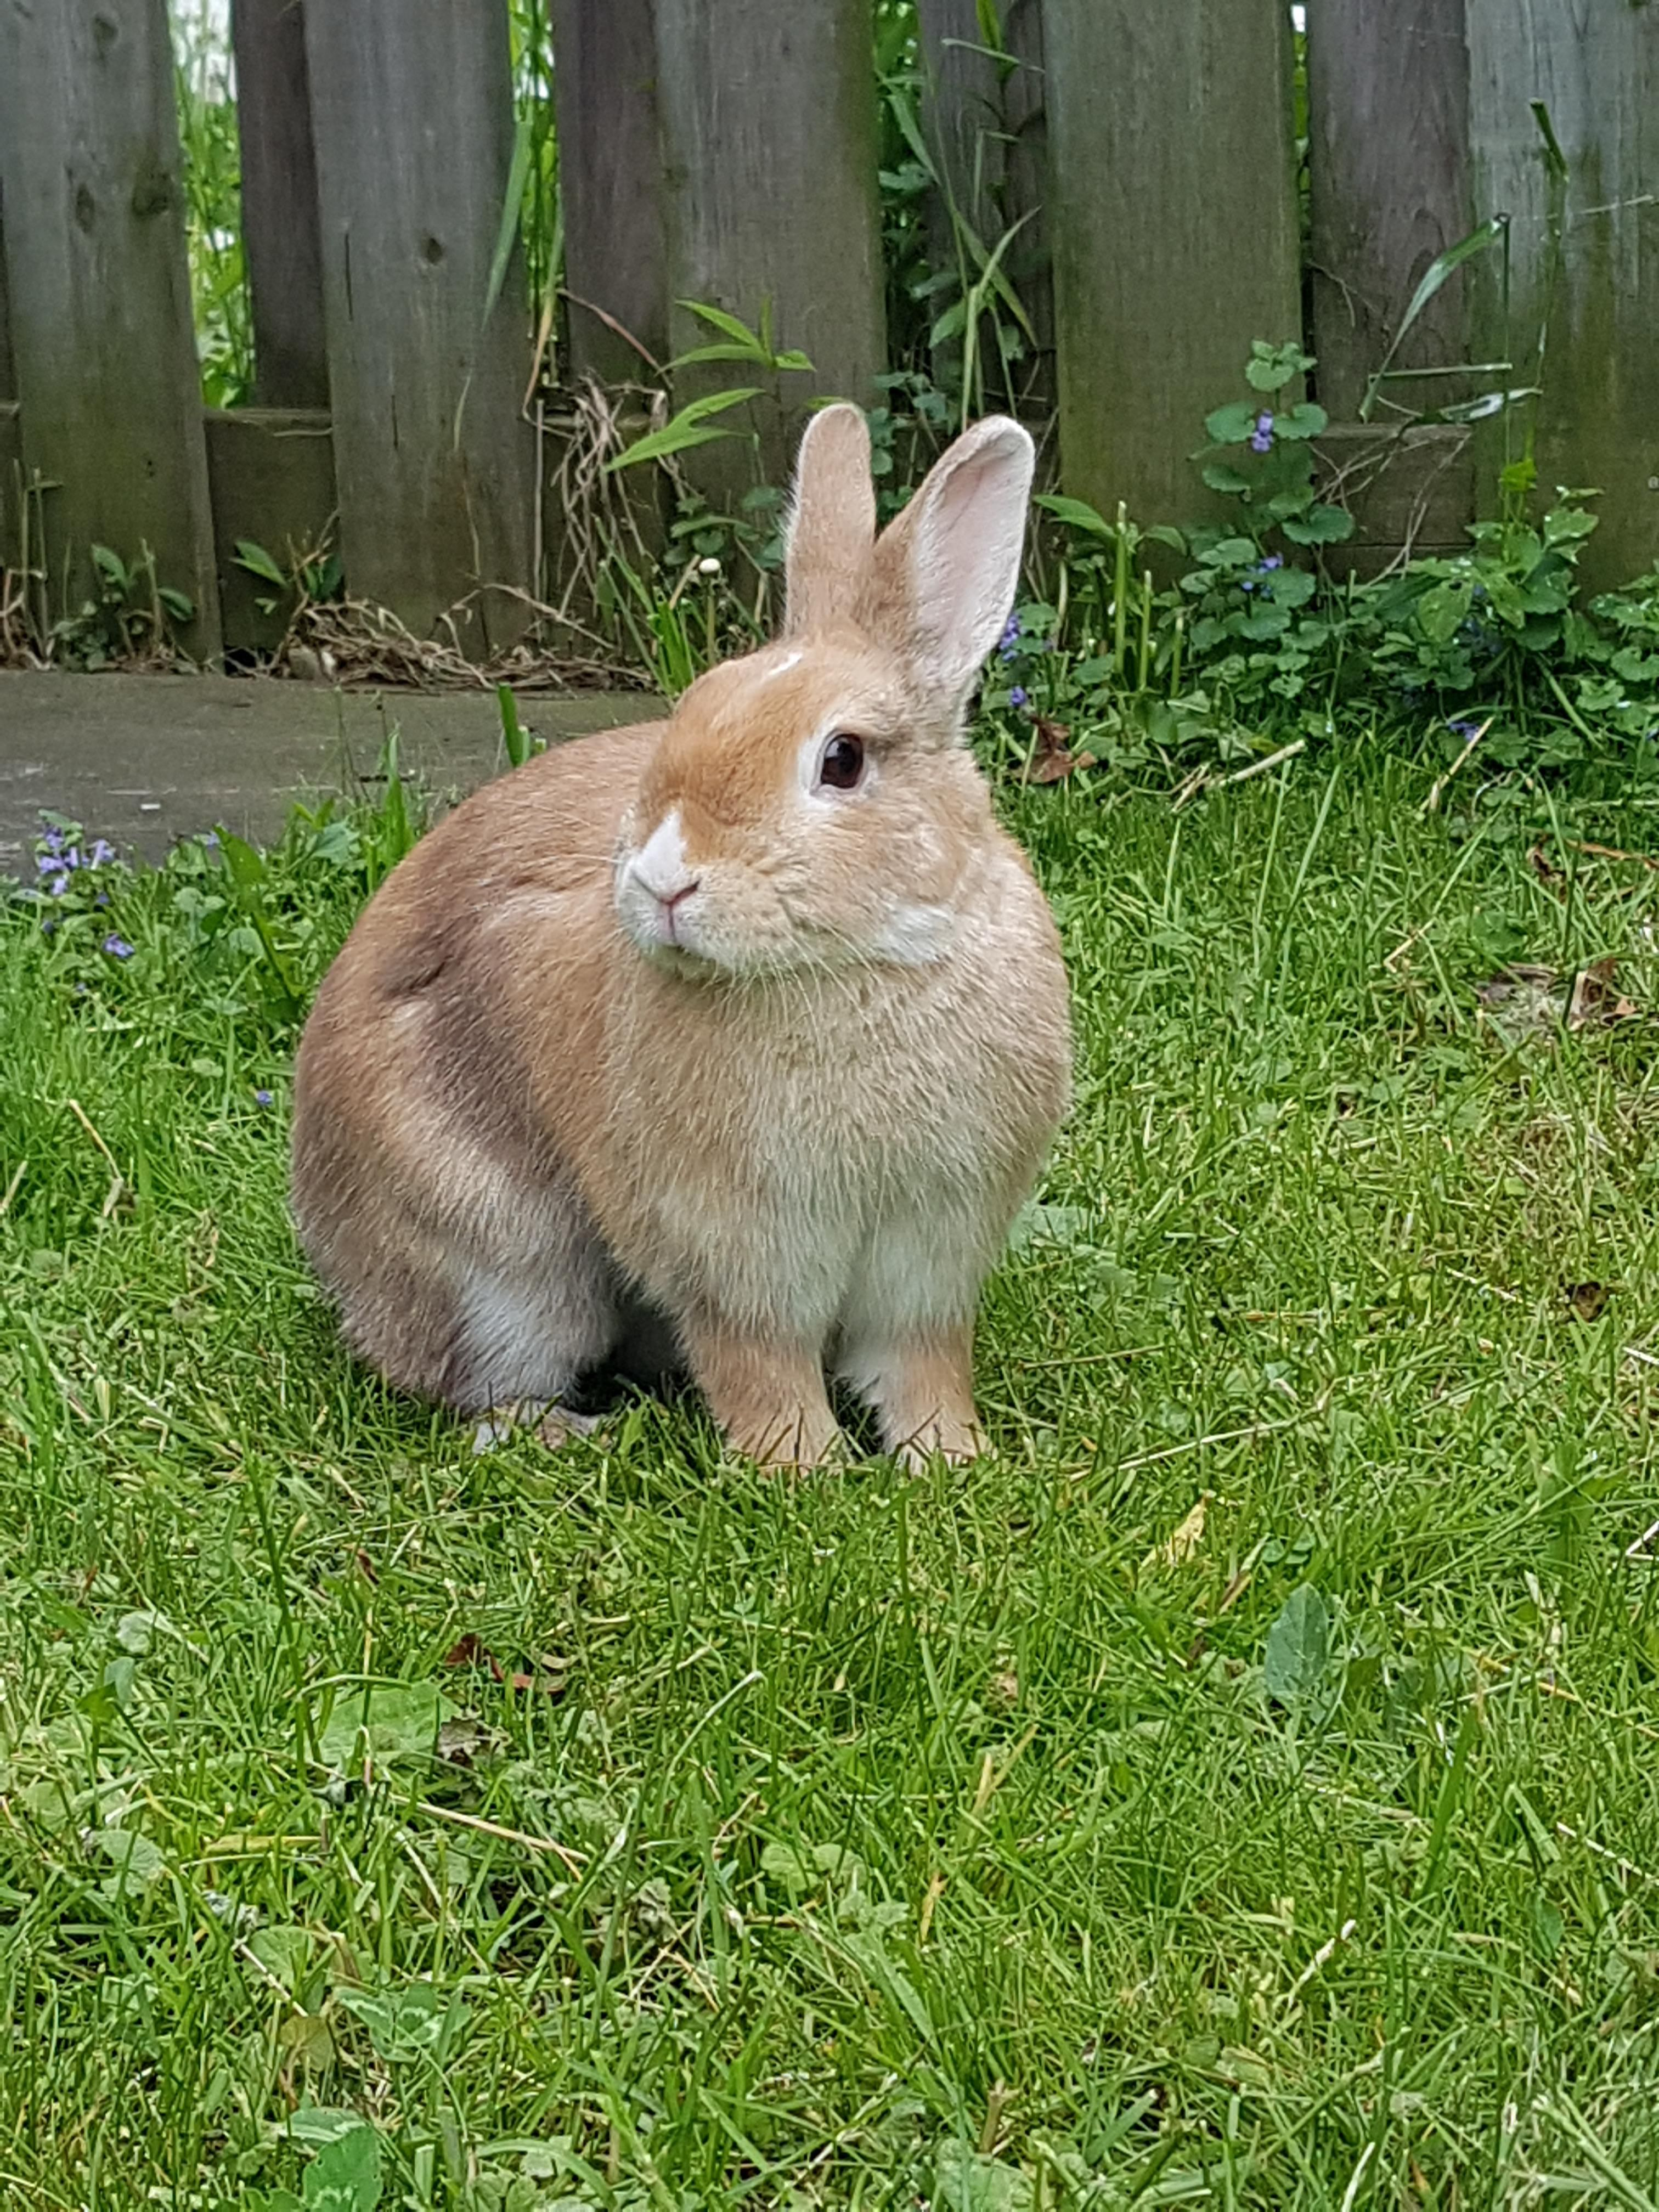 Loving The Great Outdoors Rabbits Are Not An Ideal Pet For Children Rabbits Are A 12 Year Commitment Rabbits Need Rabbit Cute Bunny Rabbit Eating